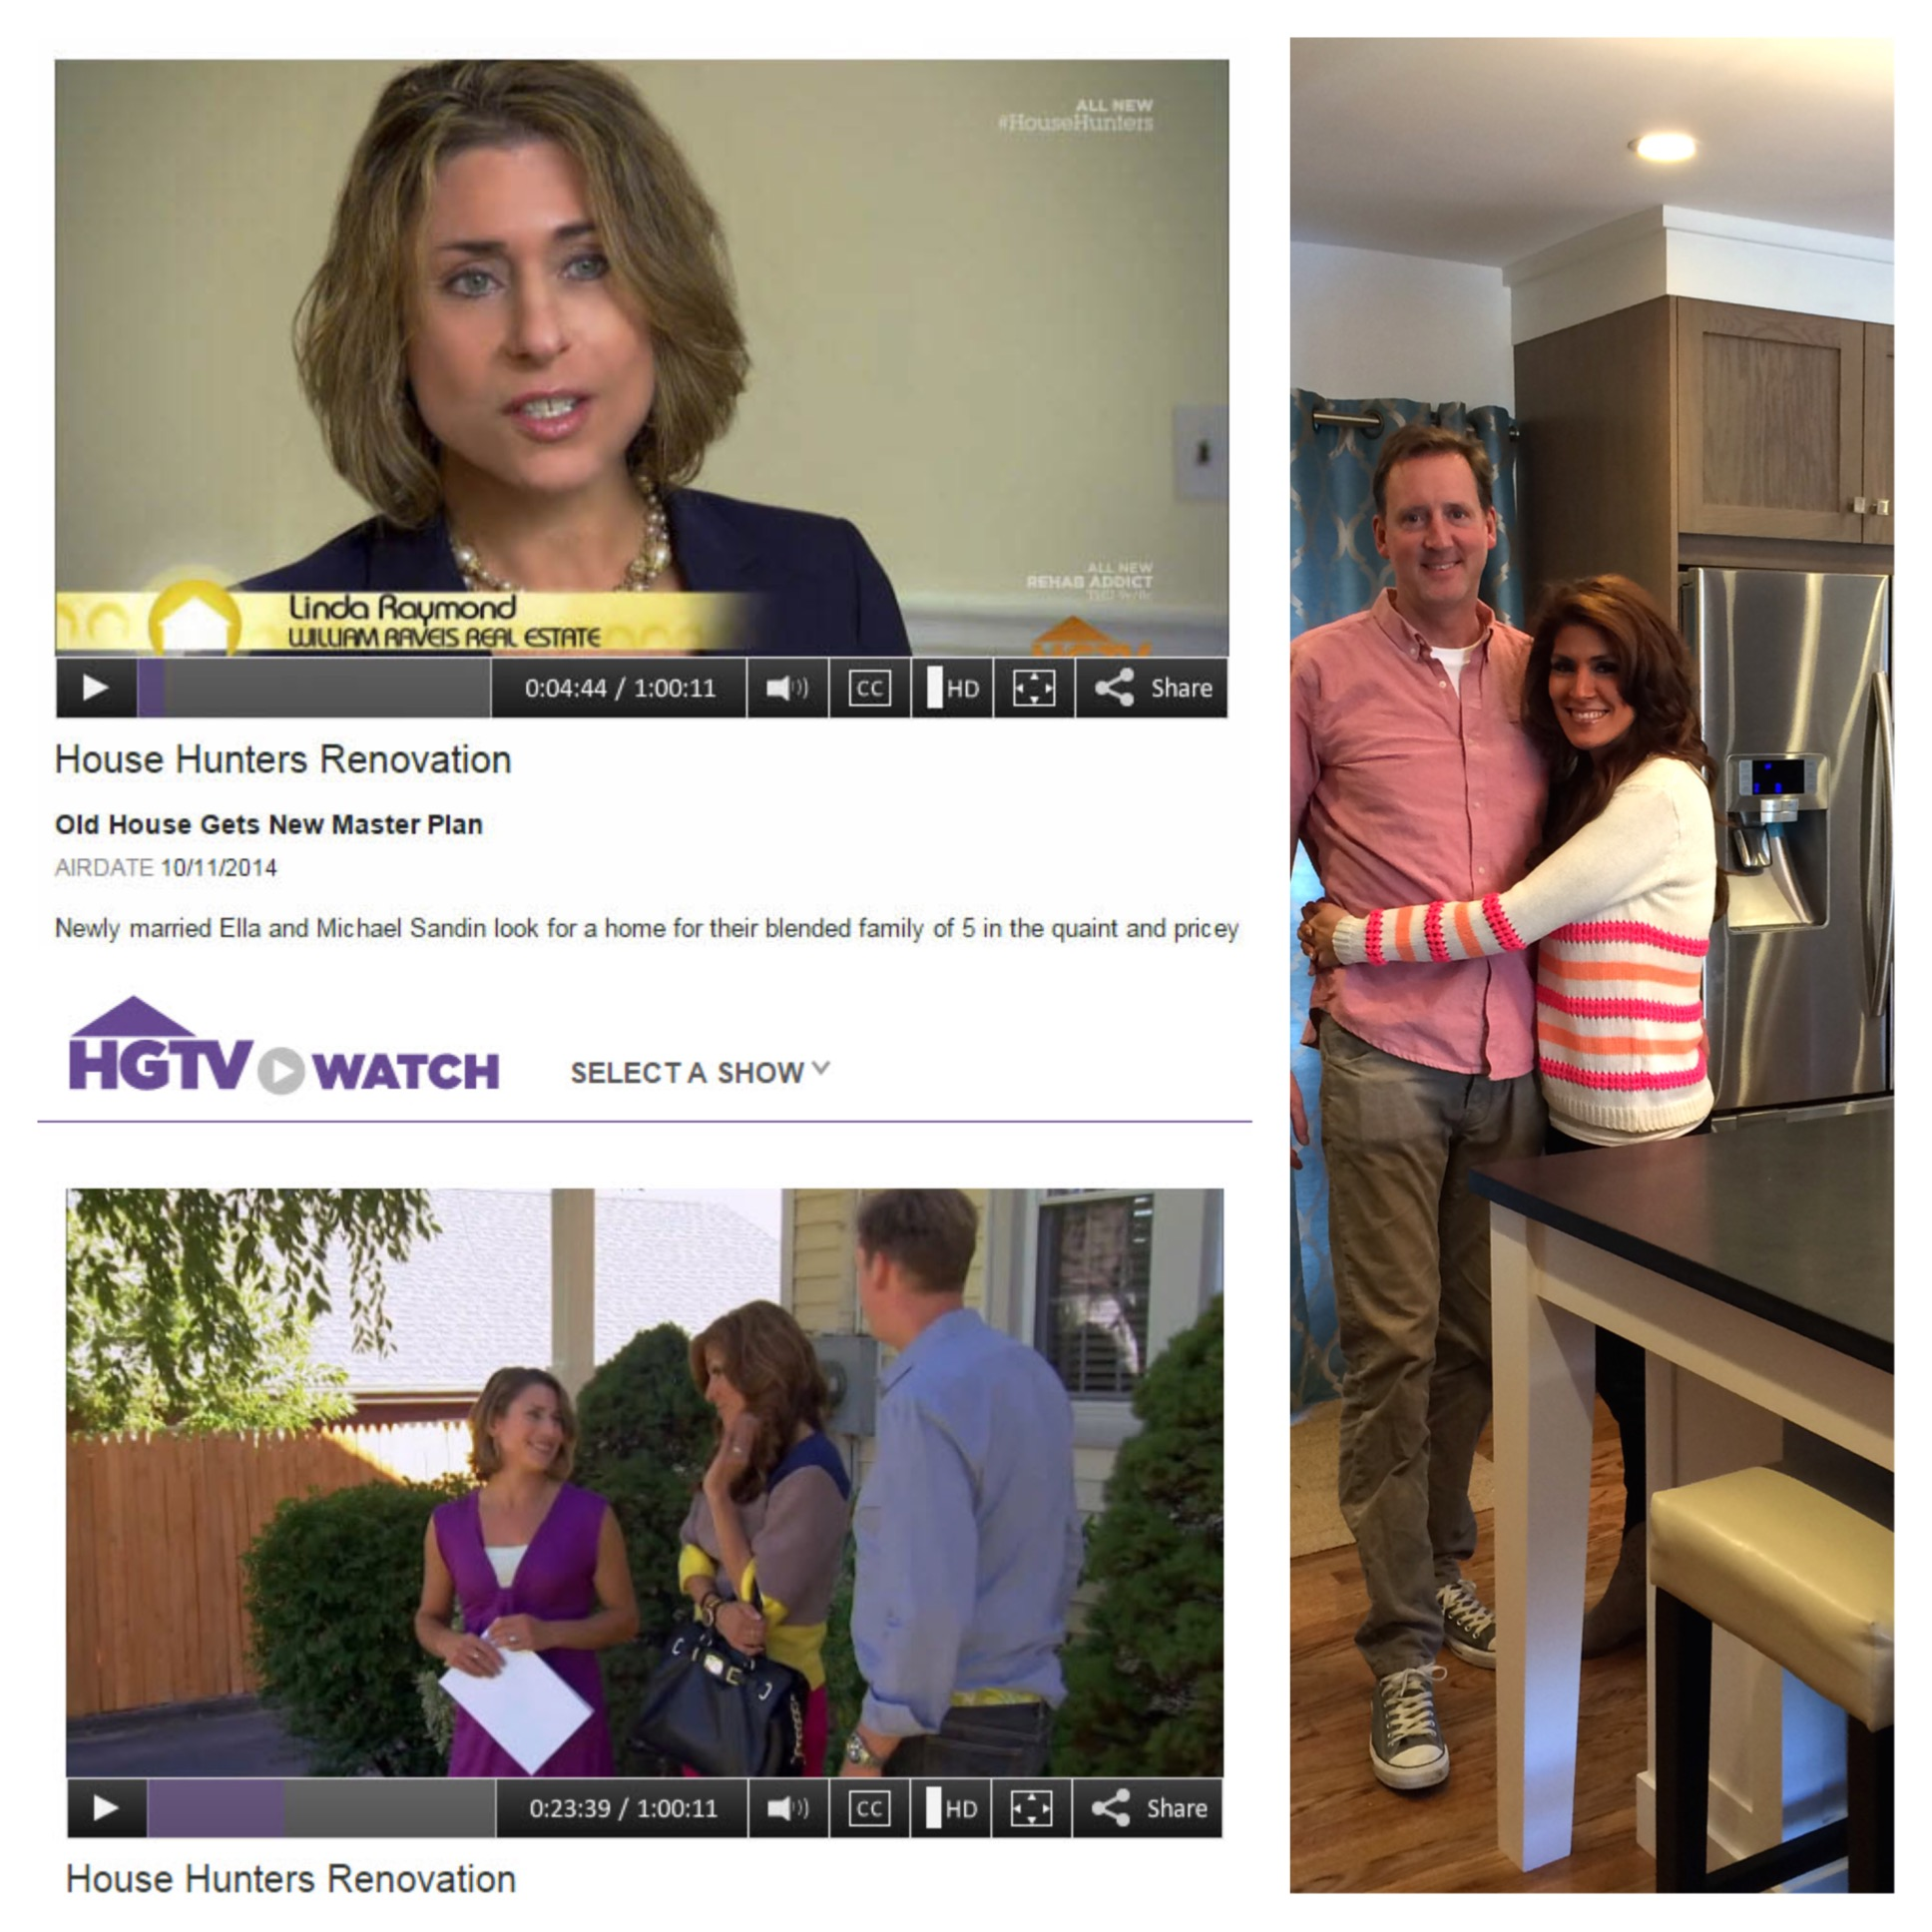 House Hunters Renovation: Tune In To HGTV's House Hunters Renovation!